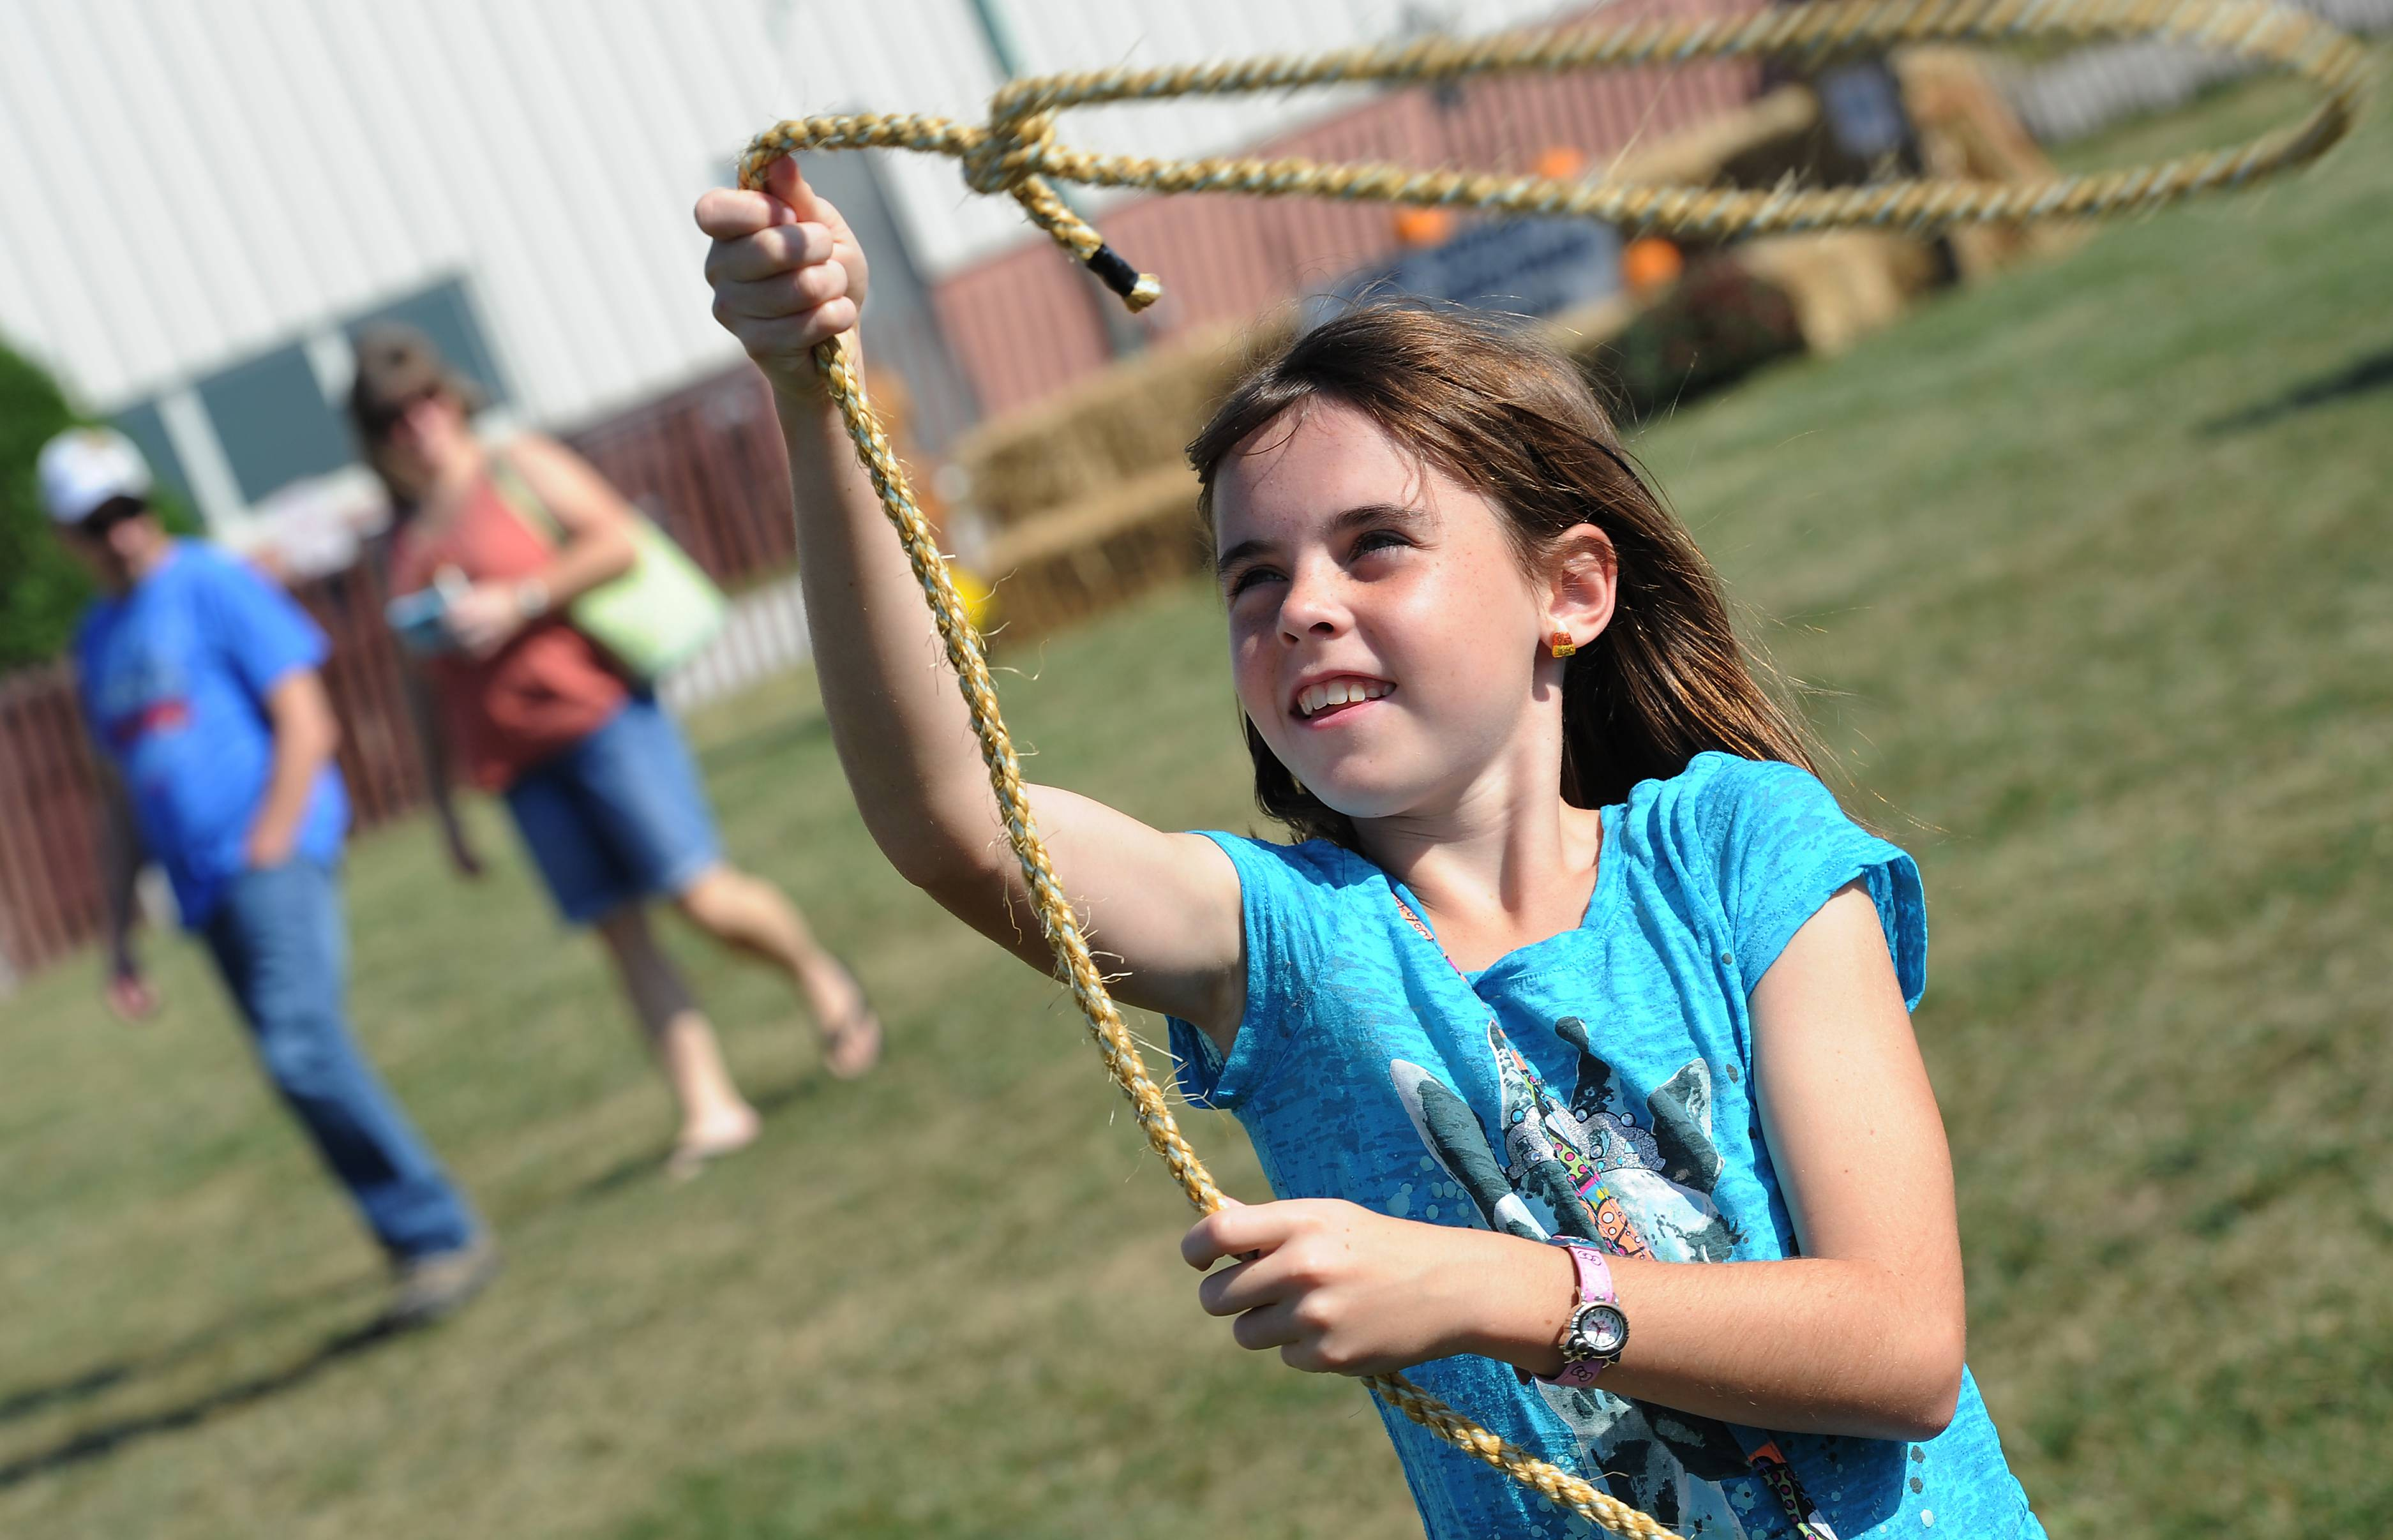 Tylea Crow, 10, practices her roping skills at the Farm Heritage and Harvest Festival at the Lake County Fairgrounds on Sunday.